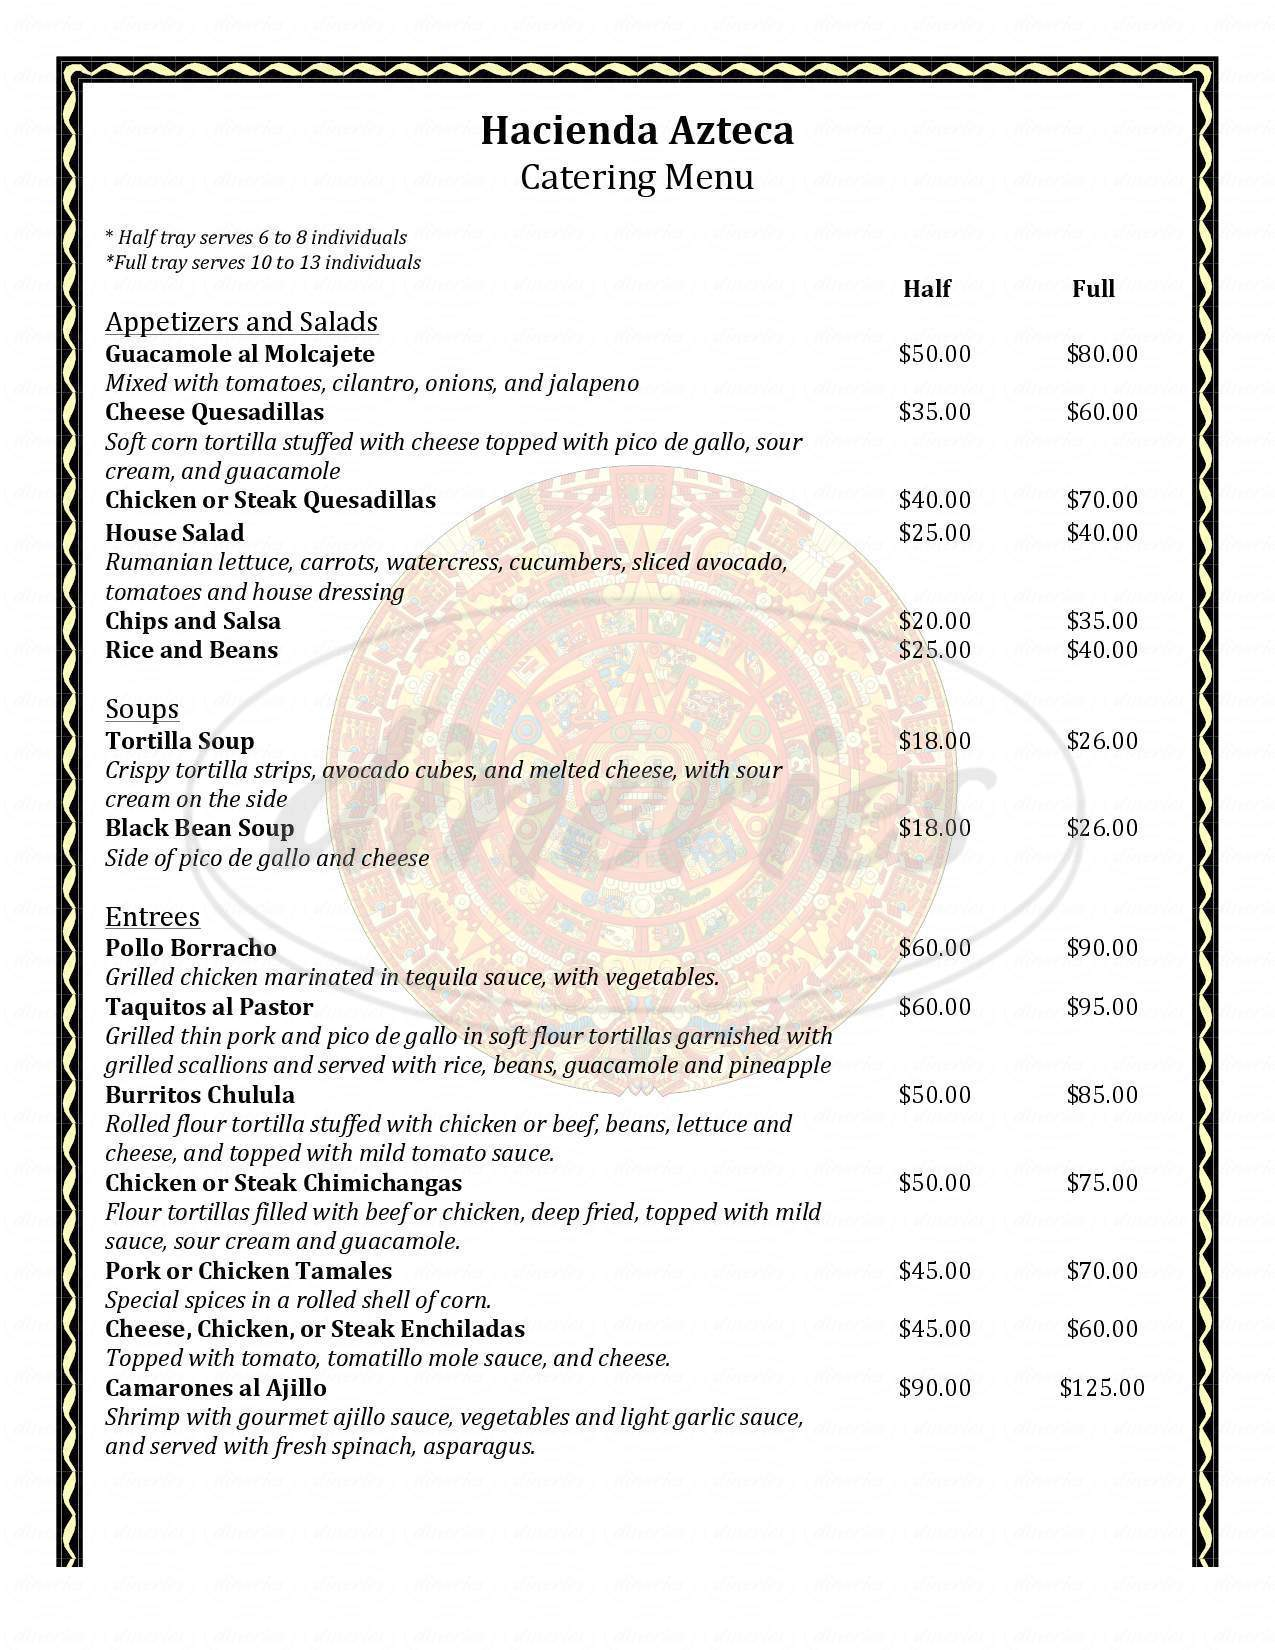 menu for Hacienda Azteca